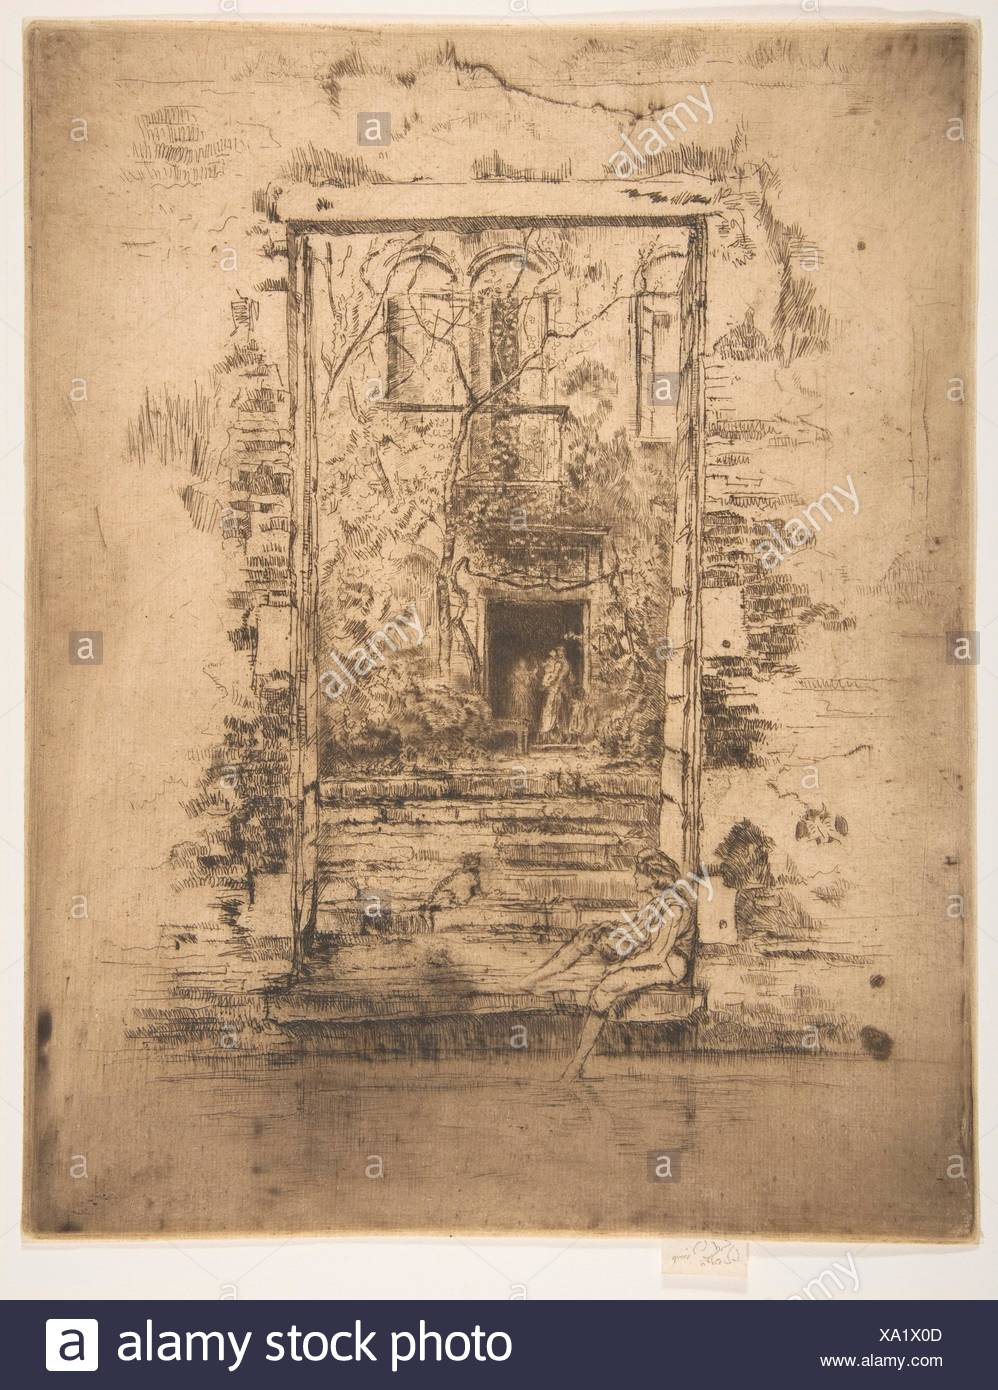 The Garden. Series/Portfolio: Second Venice Set (A Set of Twenty-Six Etchings by James A. McN. Whistler, 1886); Artist: James McNeill Whistler - Stock Image